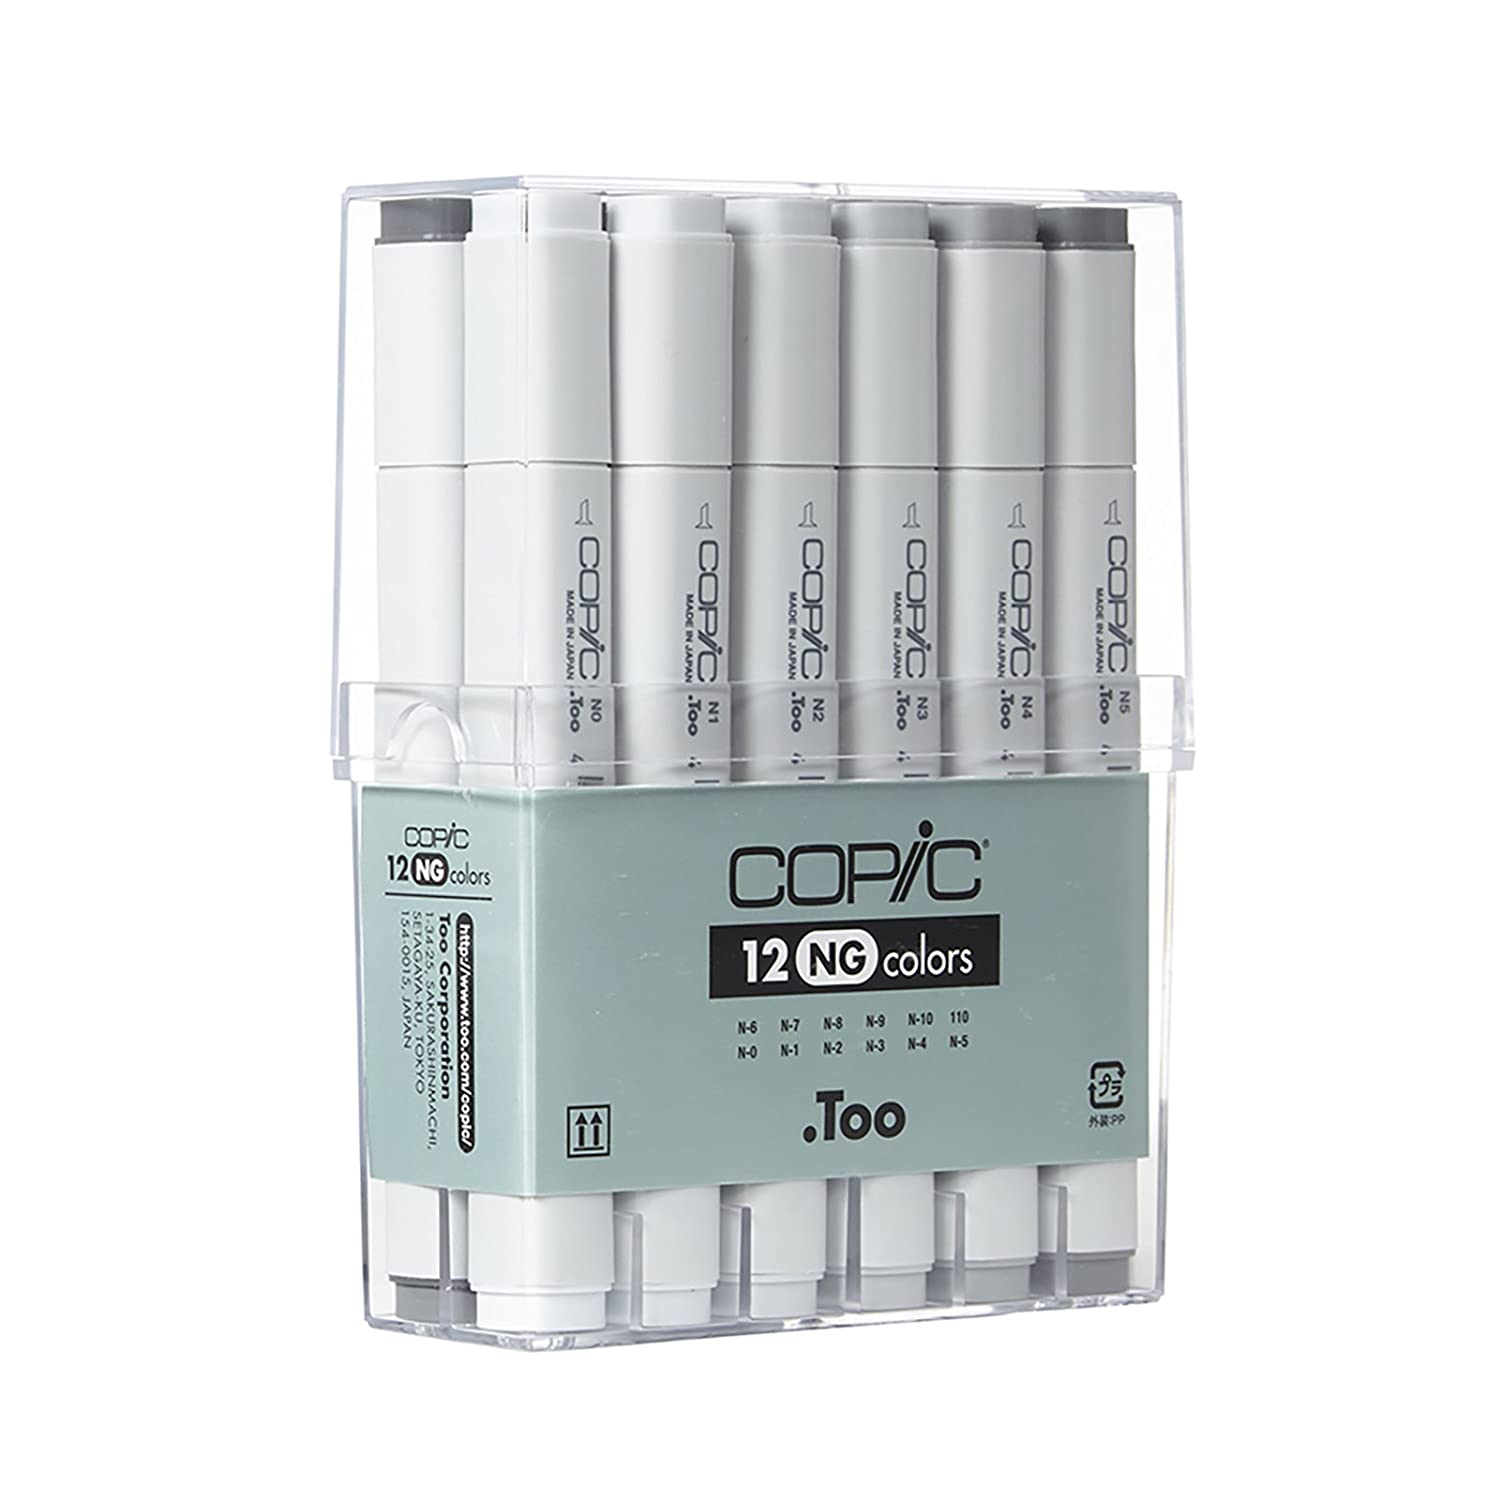 Copic 20075152 Set Marcatore da 12, Neutro Grigio Too Marker Products Inc. CNG12